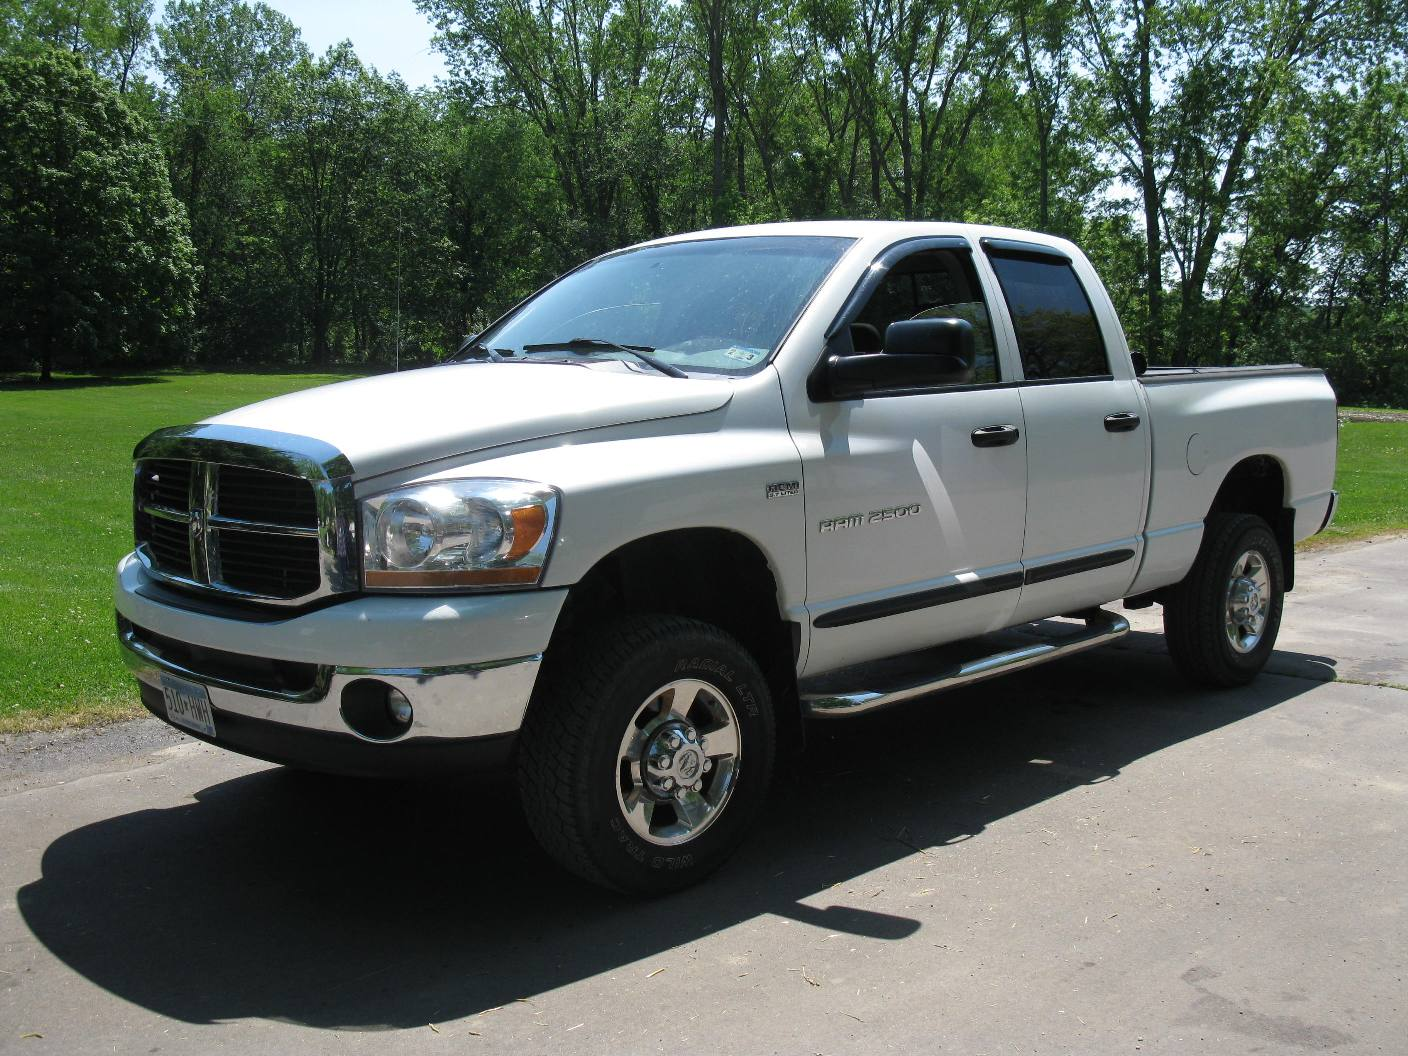 2006 Dodge Ram Pickup 2500 - Pictures